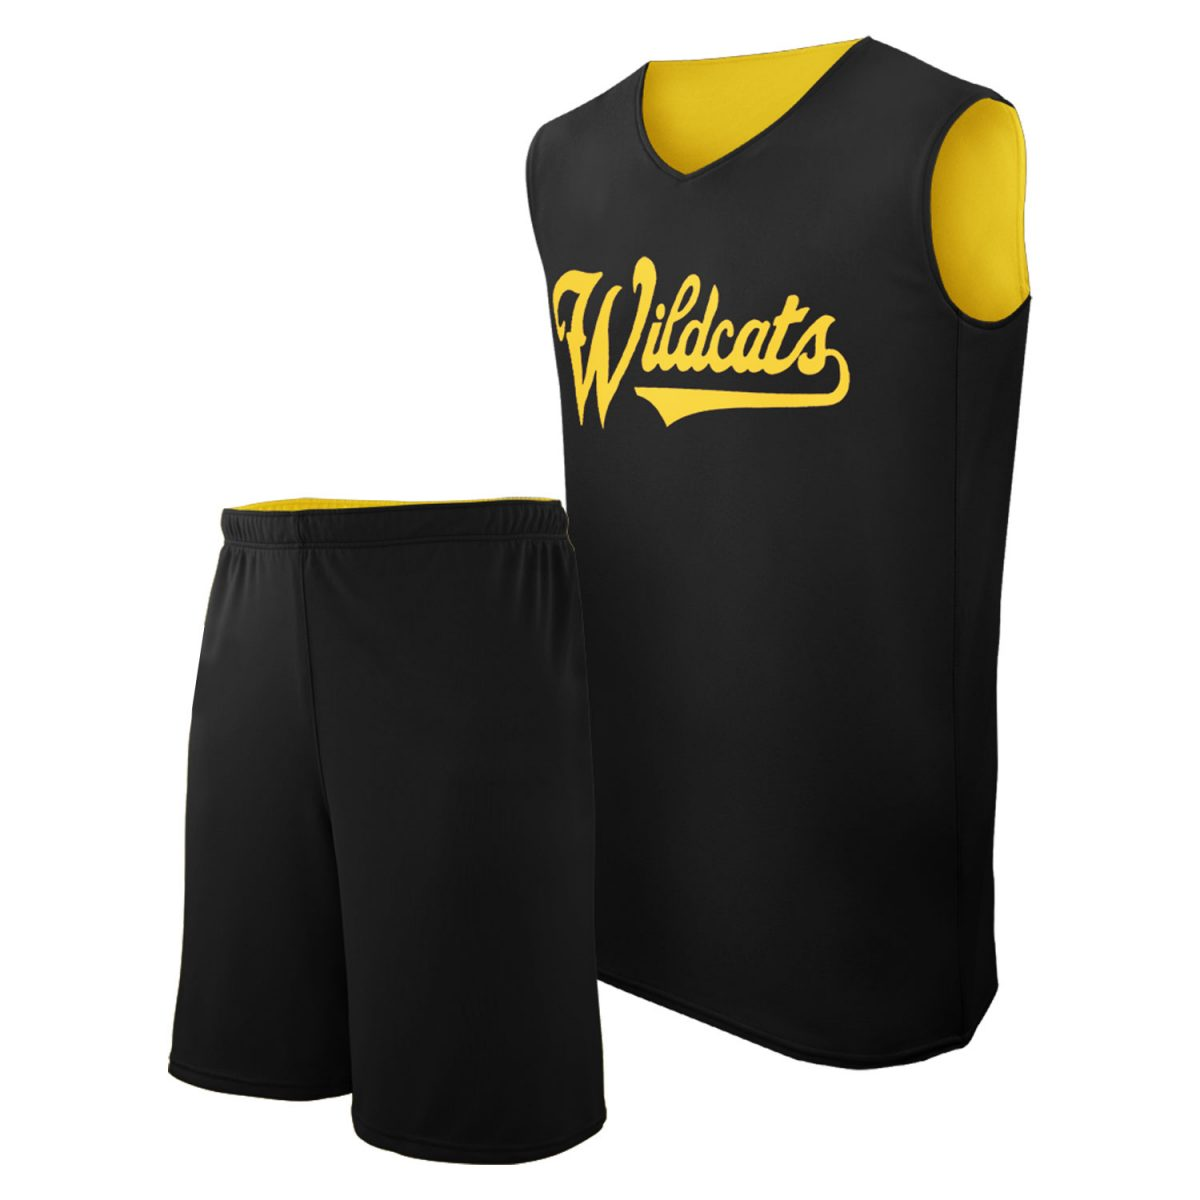 Boys Basketball Uniforms Manufacturers in Algeria